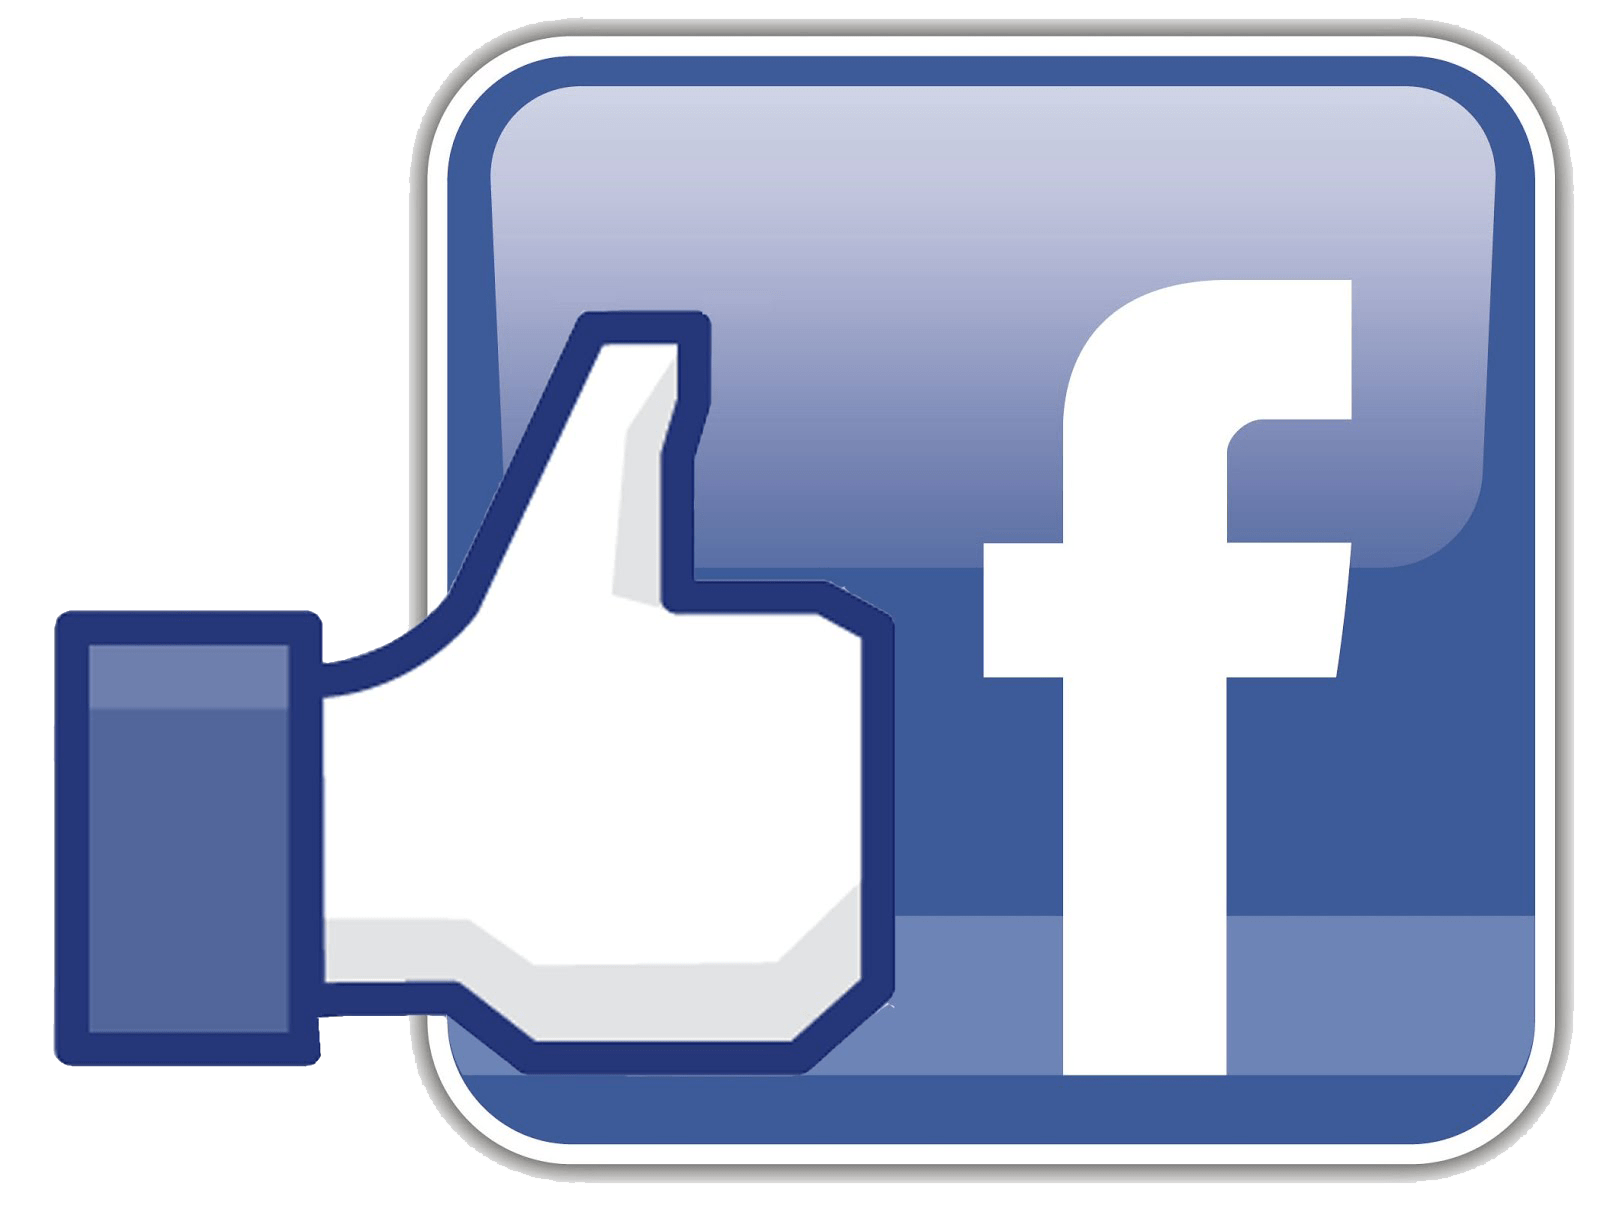 Icono Facebook con Like PNG transparente - StickPNG